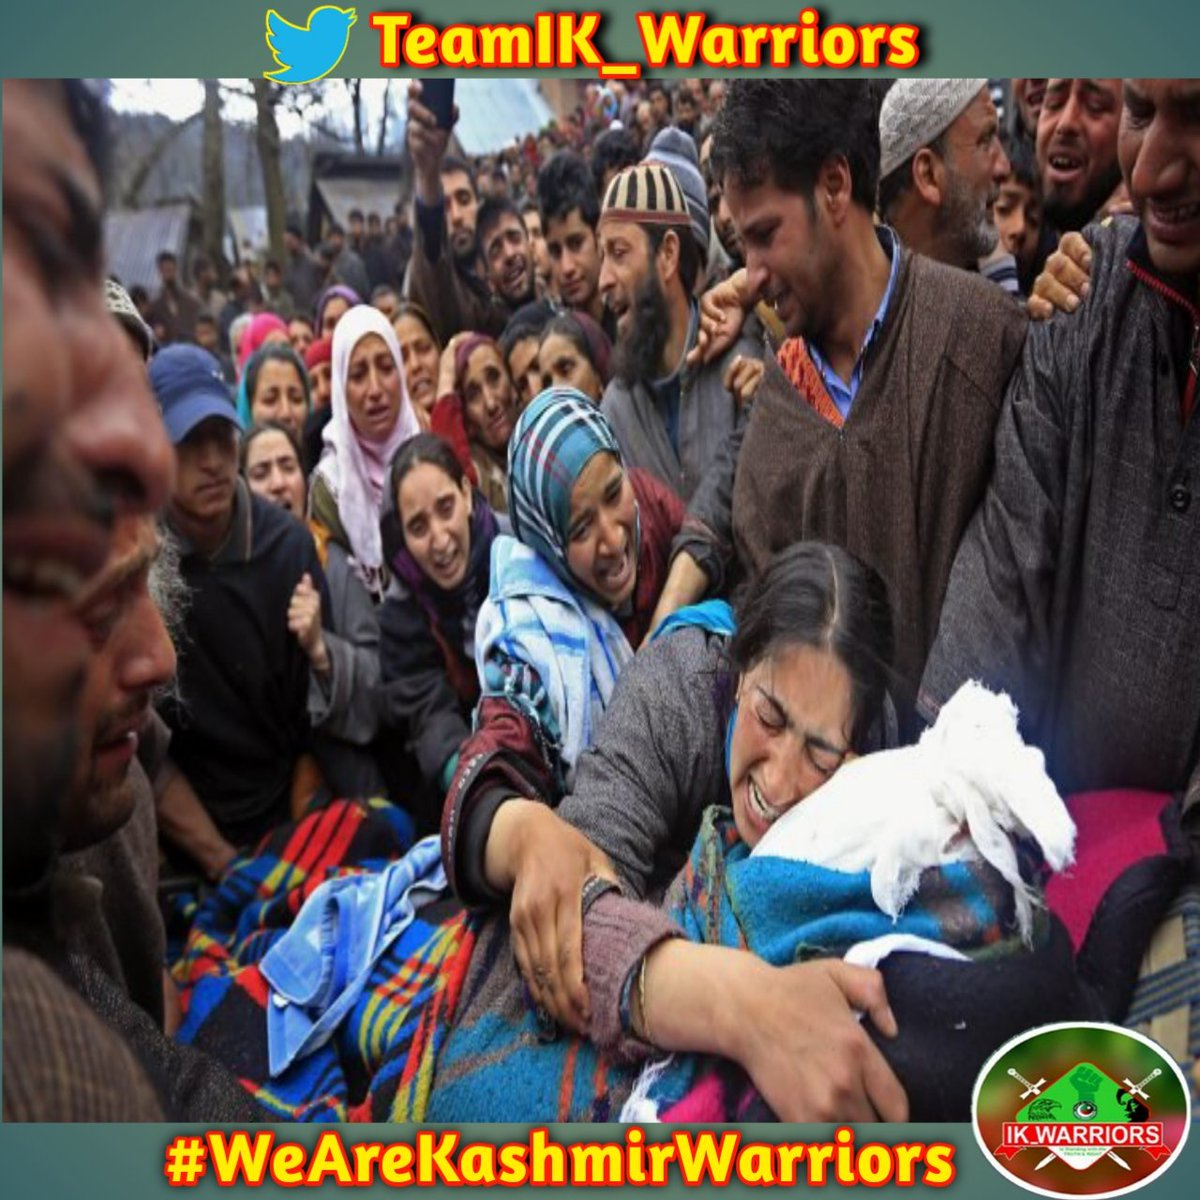 A report says, €nd!an s0ld!ers have been killing innocents civilians in kashmir in requital attacks.  Even the infants were not spared by them.  WHERE ARE THE ADVOCATES OF HUMAN RIGHTS? ?   #WeAreKashmirWarriors <br>http://pic.twitter.com/7QBOpqFpII